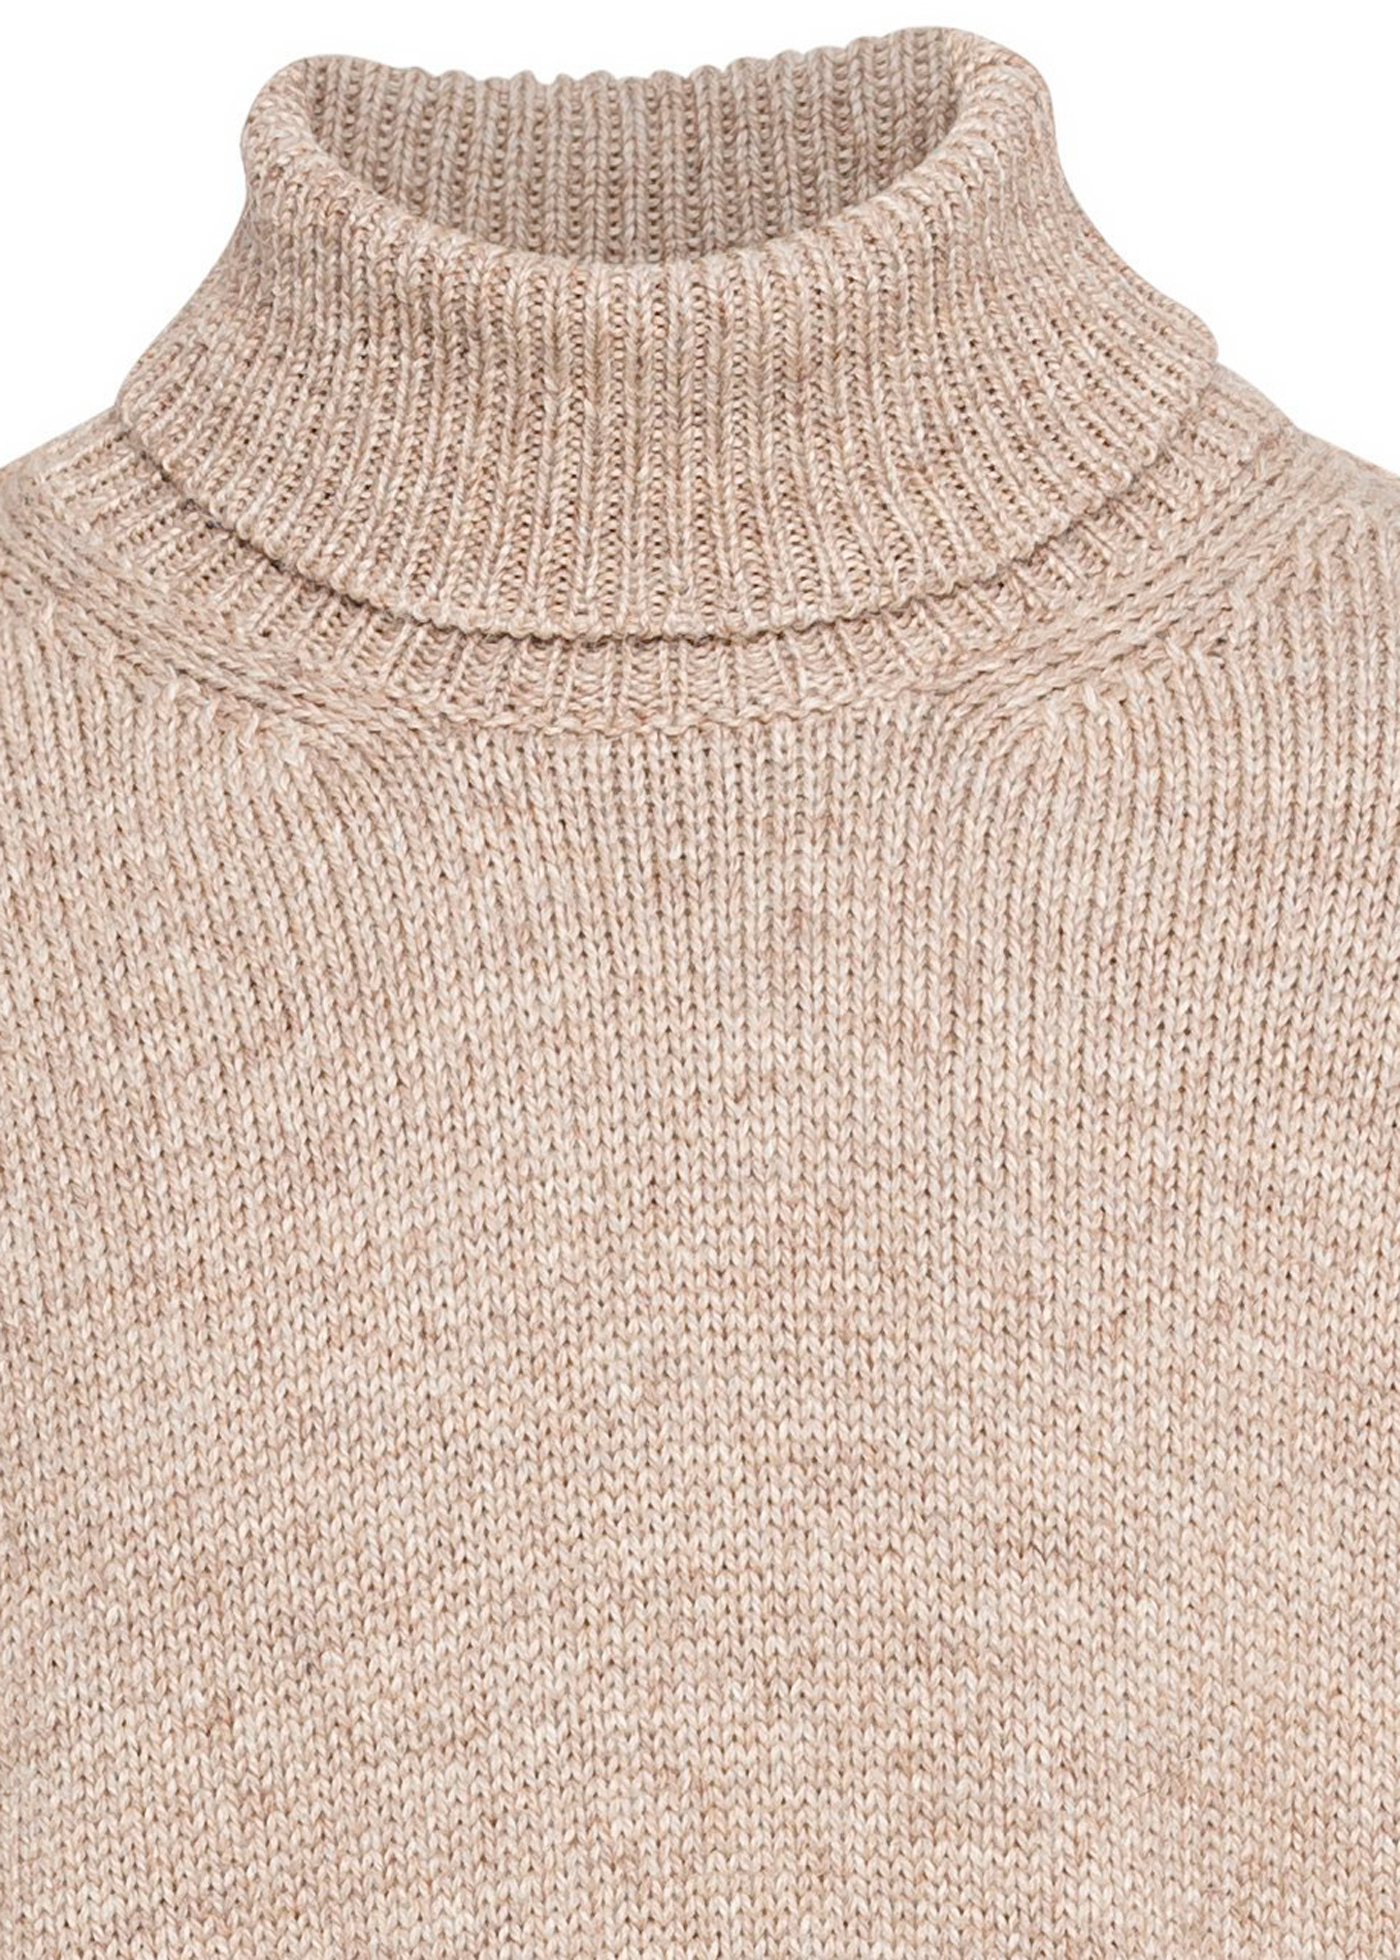 PXP TURTLE NECK image number 2